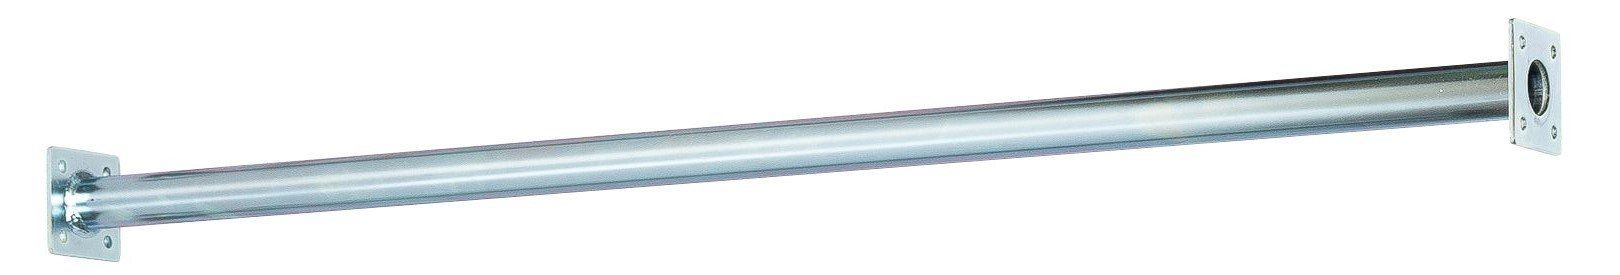 FlexTube 980 mm